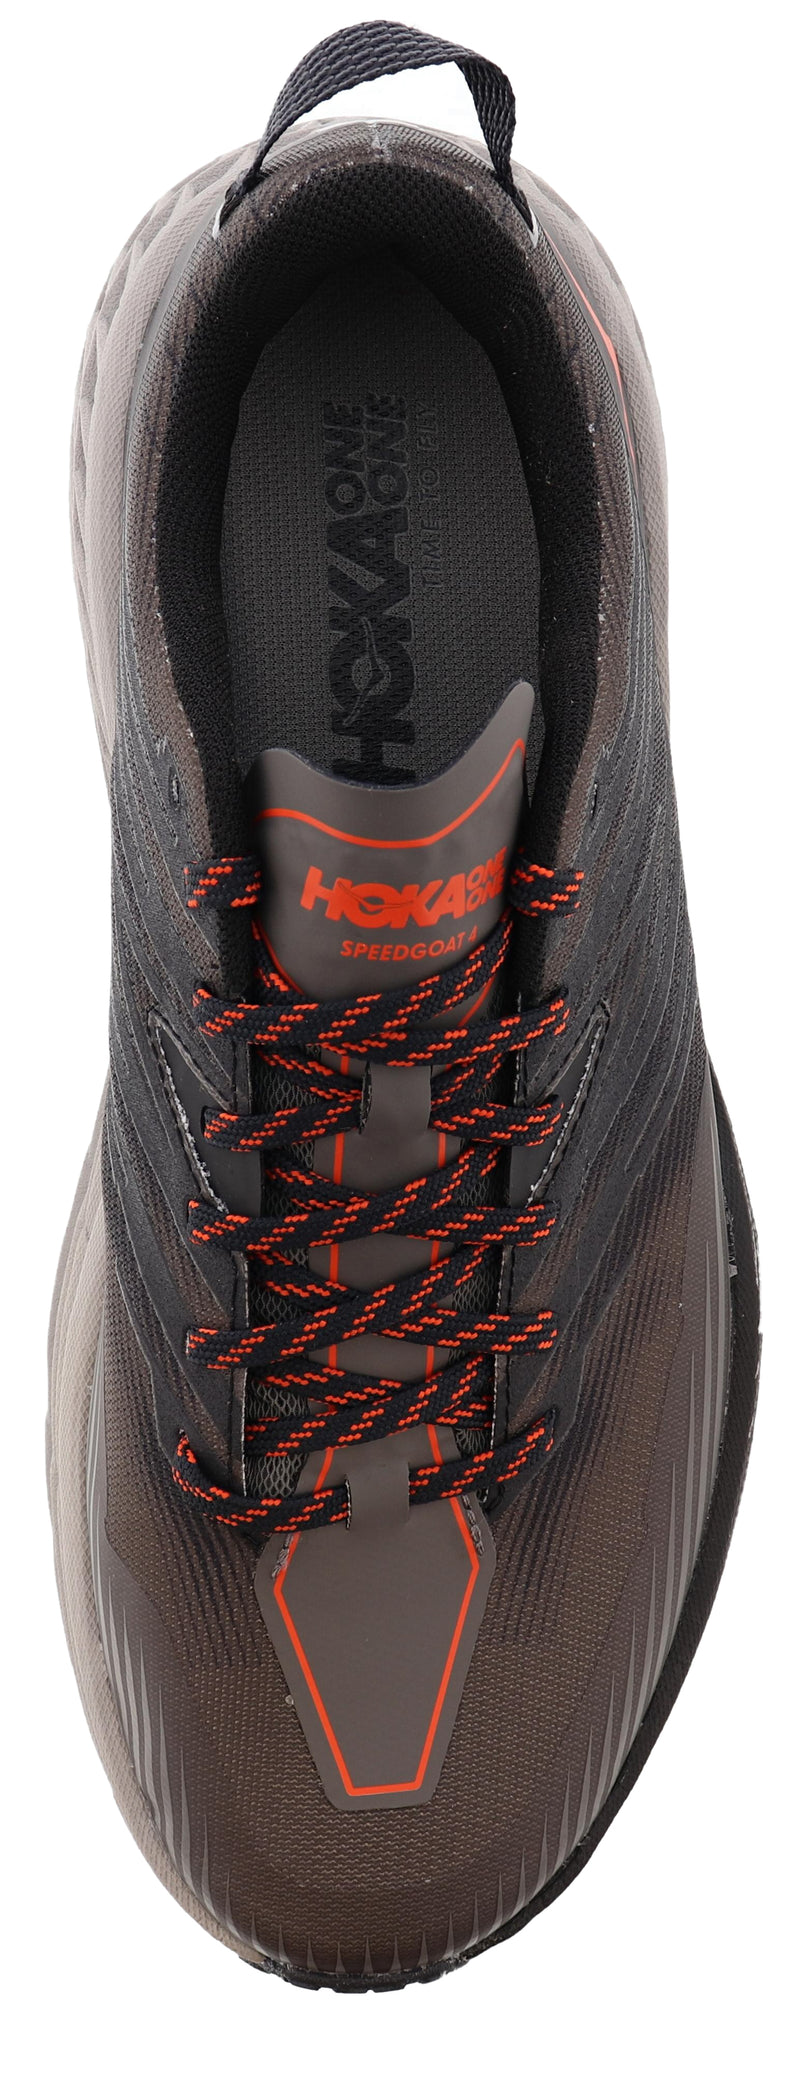 Hoka One One Men Ultra Marathon Trail Running Shoes Speedgoat 4